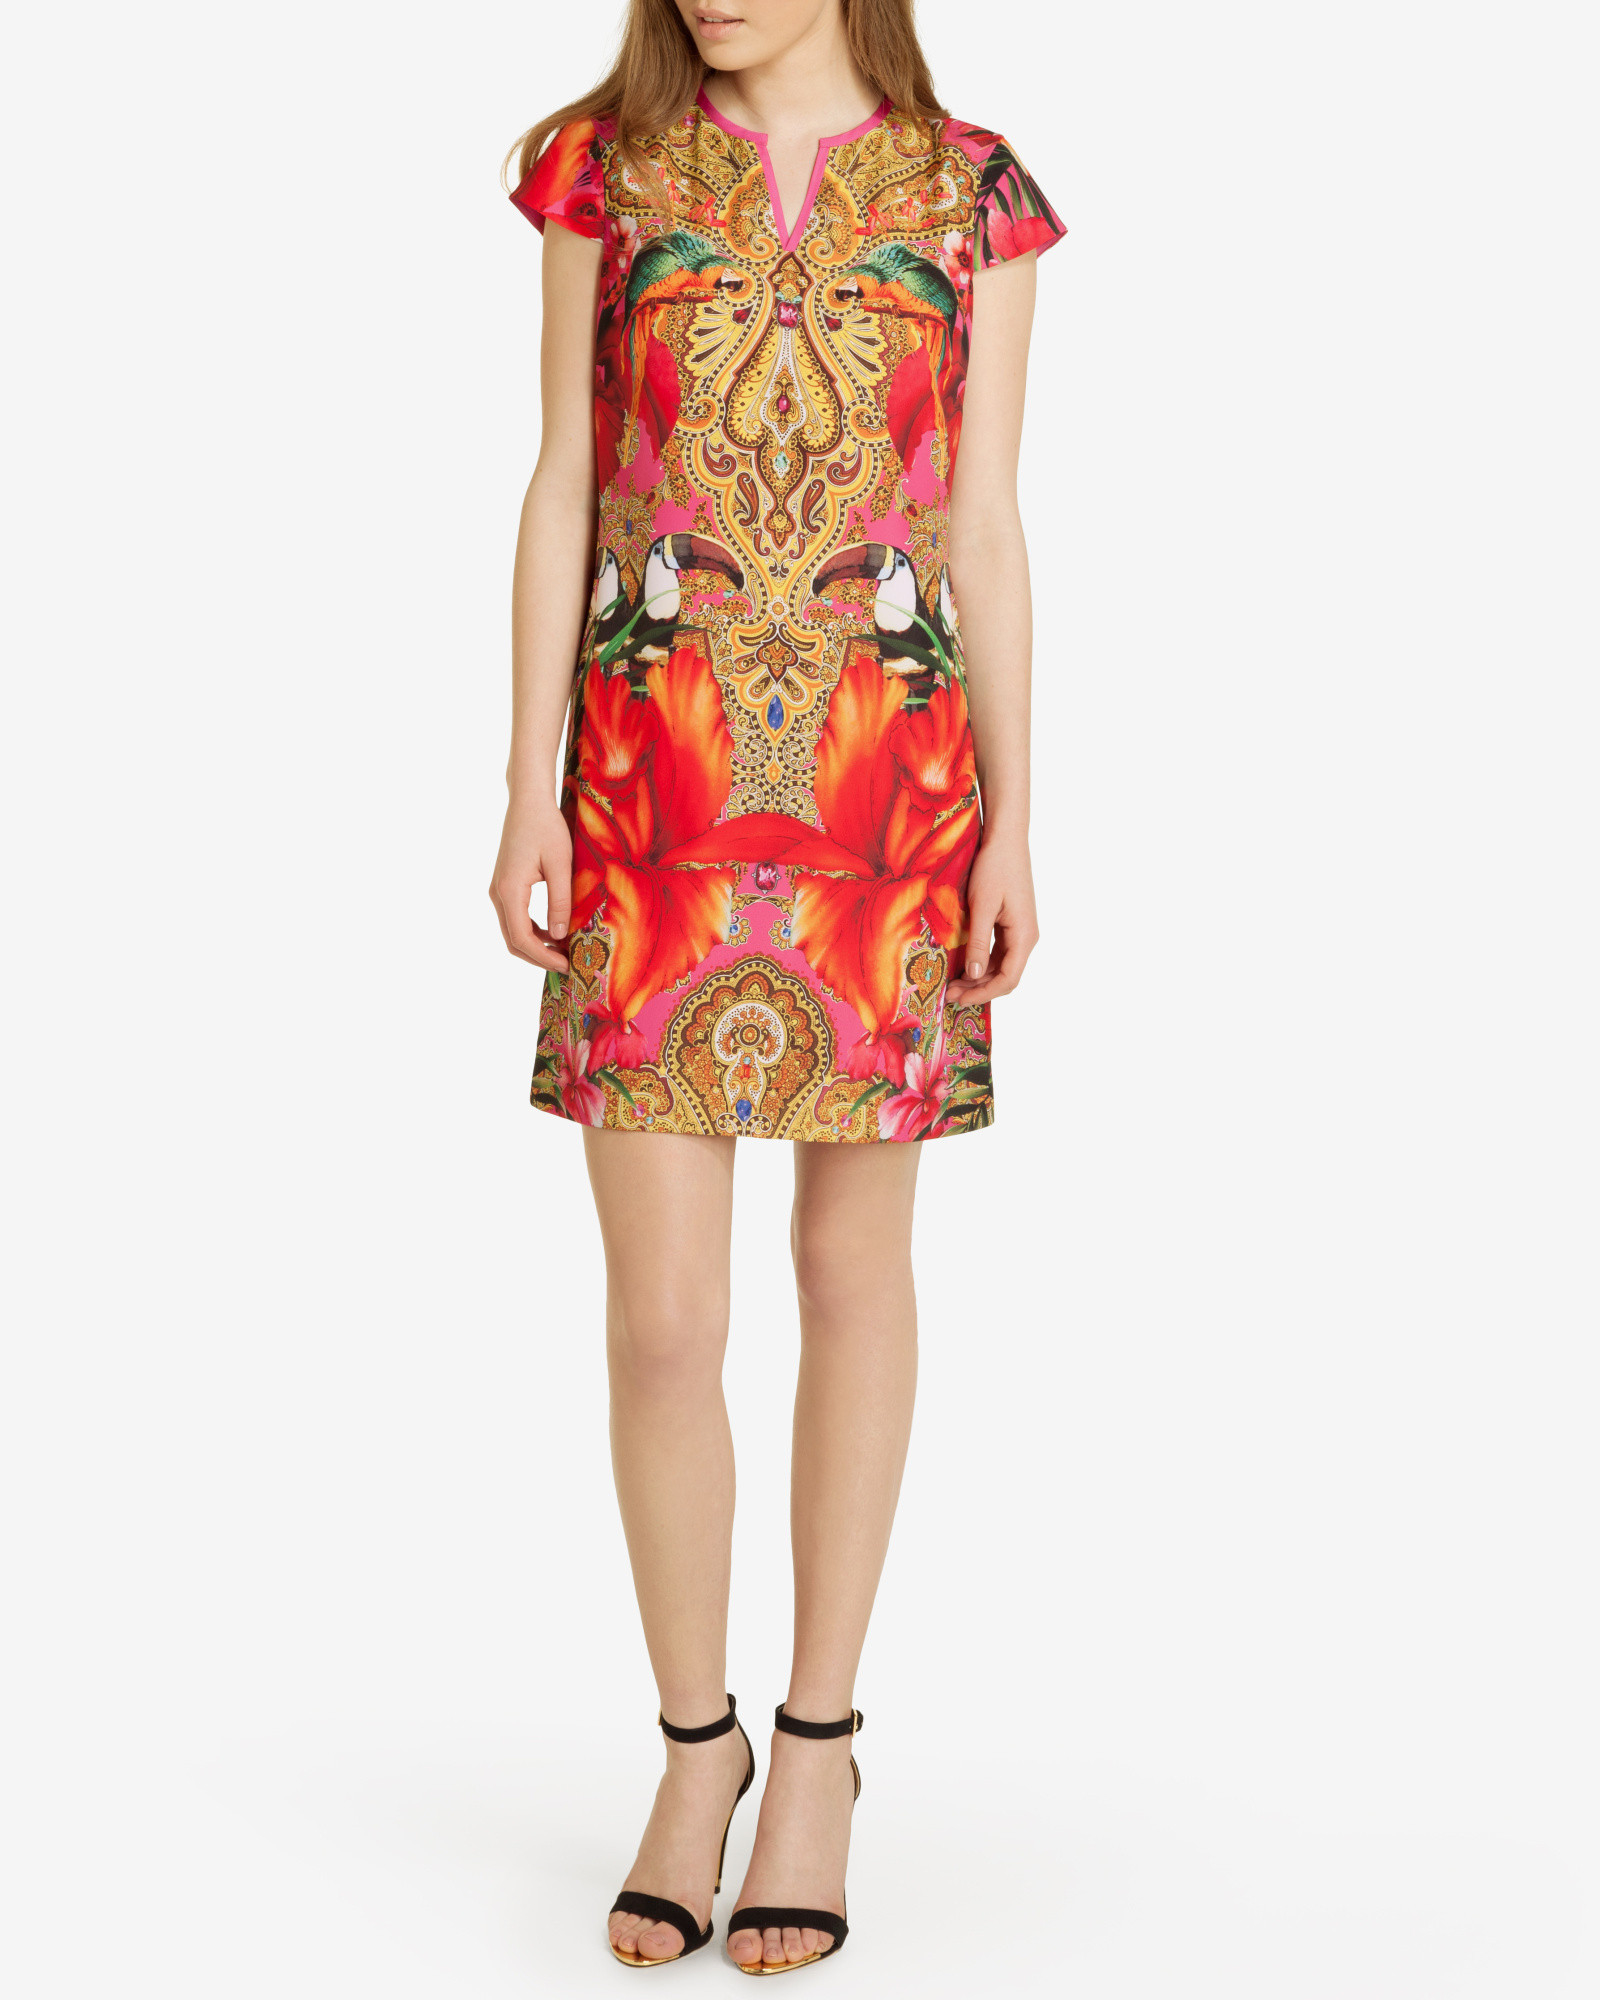 201ab4b1f3eebe Lyst - Ted Baker Paisley Toucan Tunic Dress in Pink